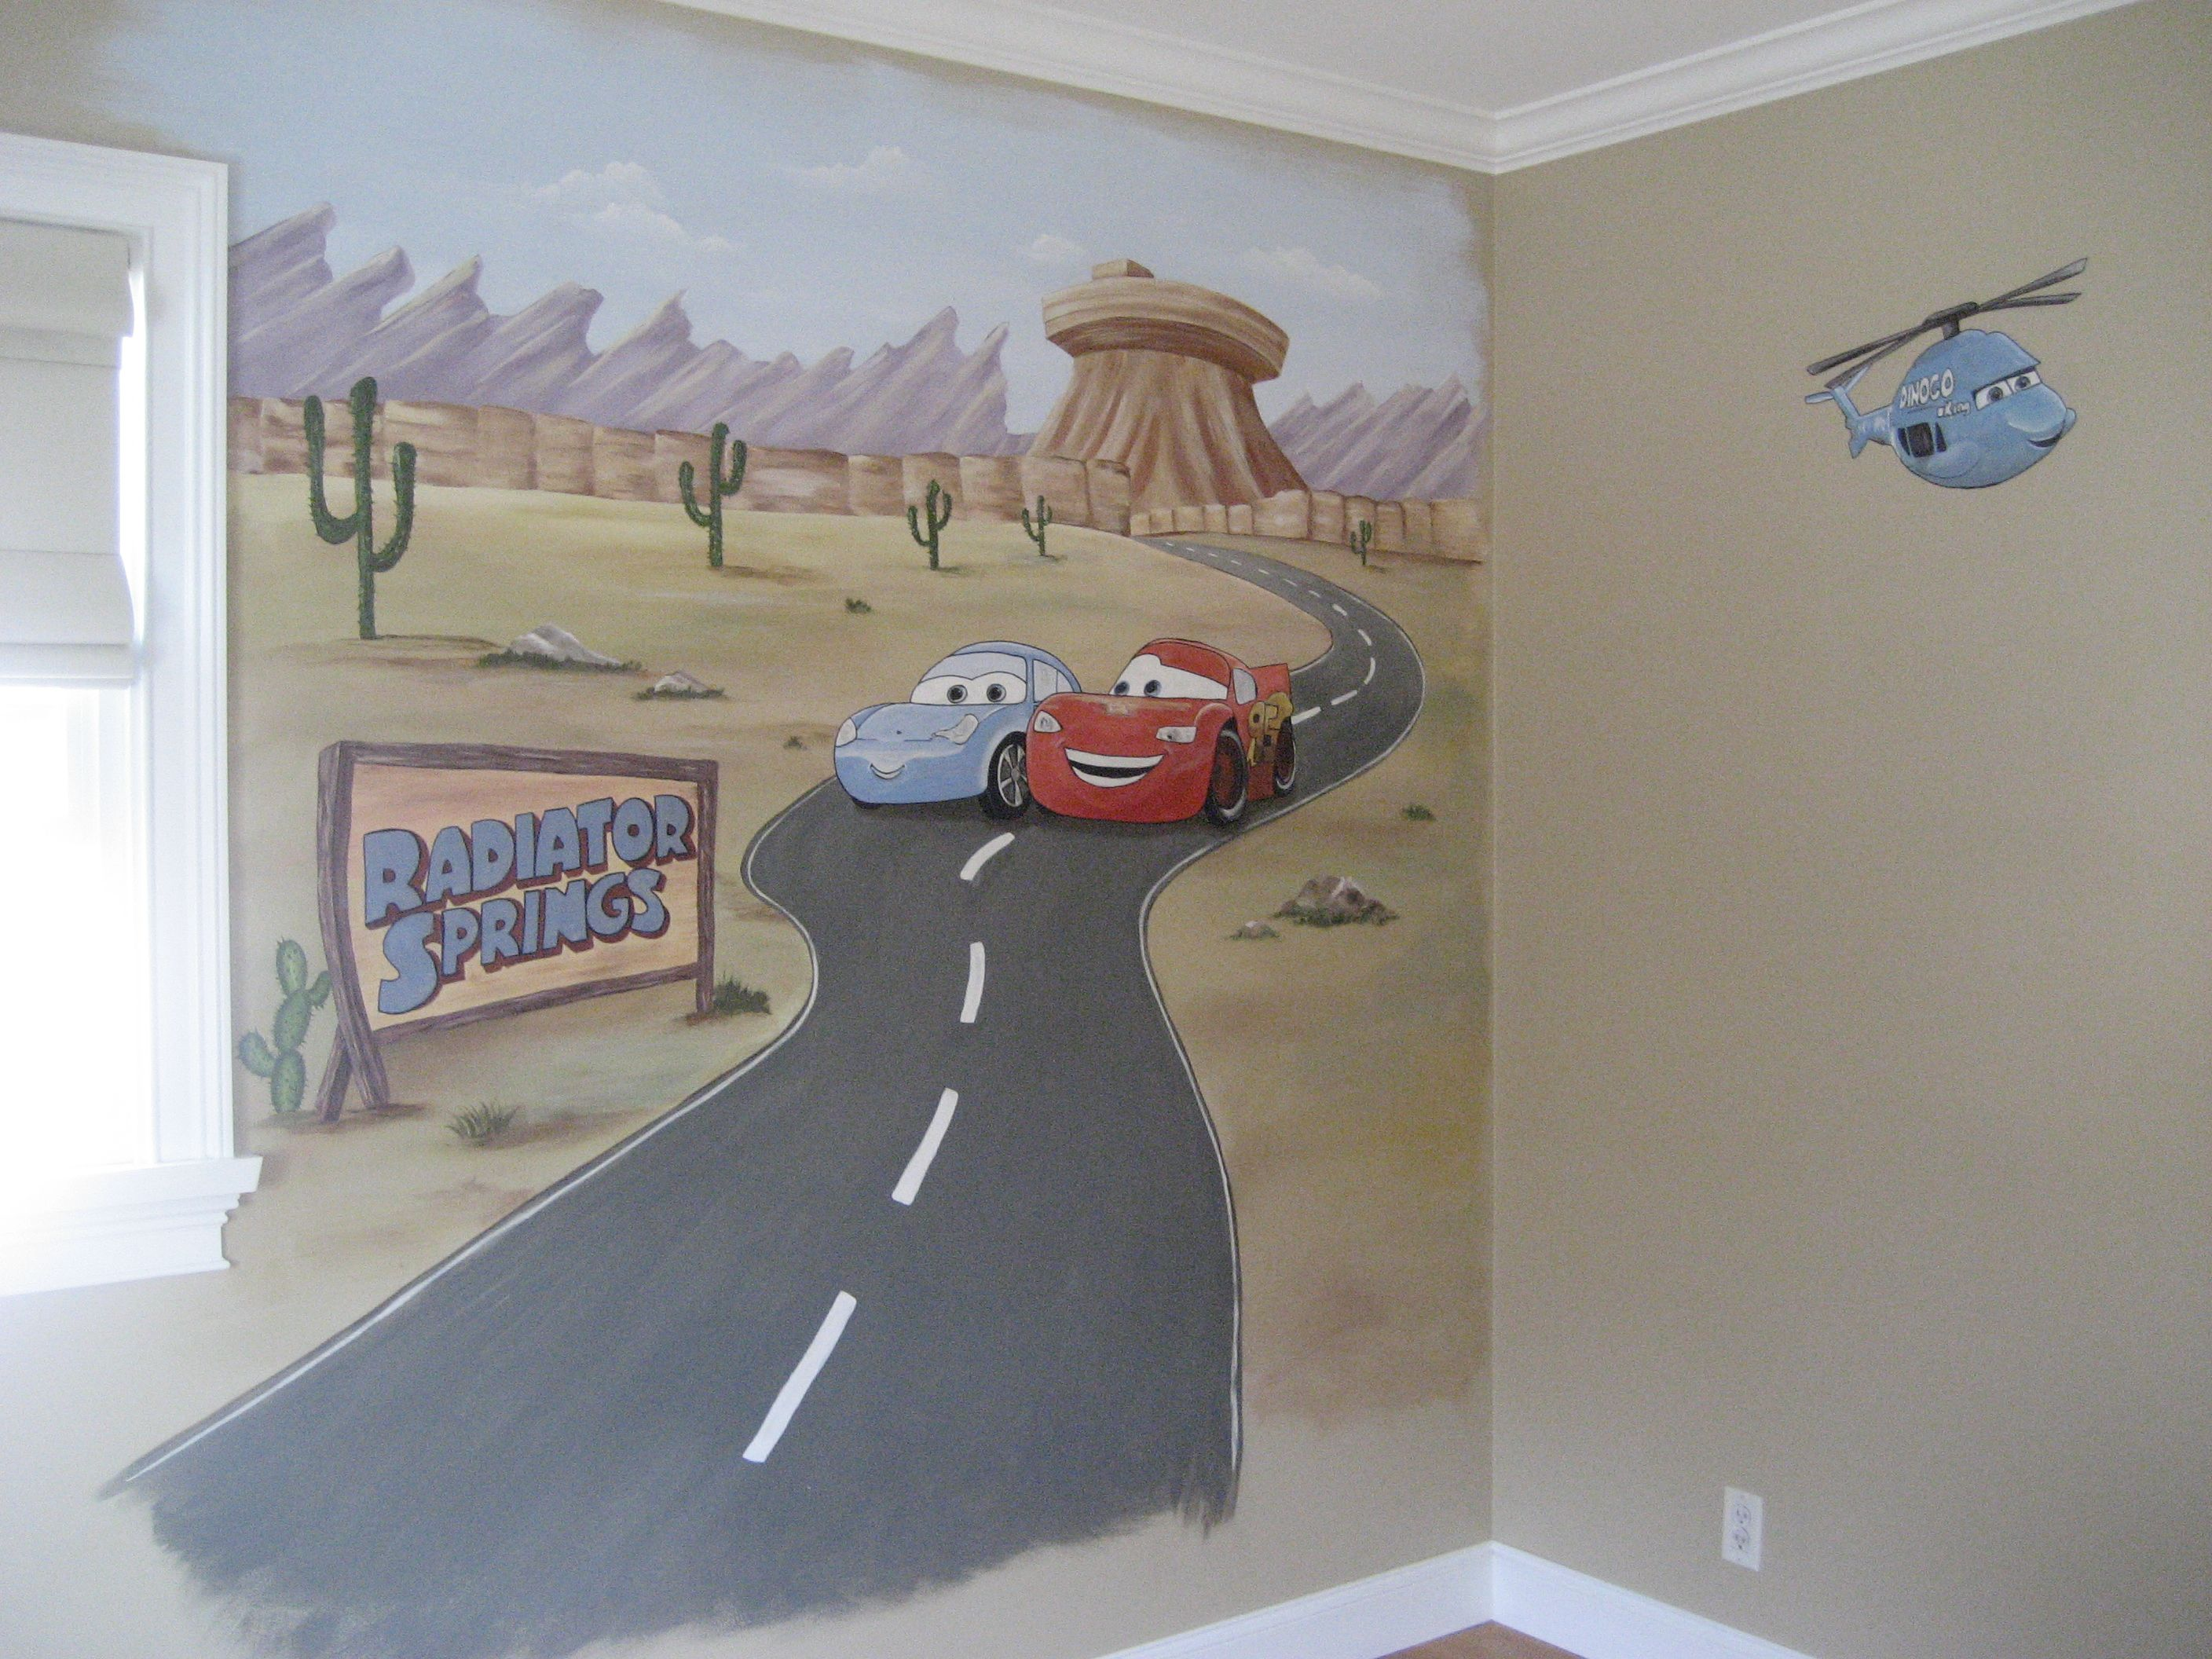 How To Paint A Wall Mural painted wall murals - google search | kamden room ideas